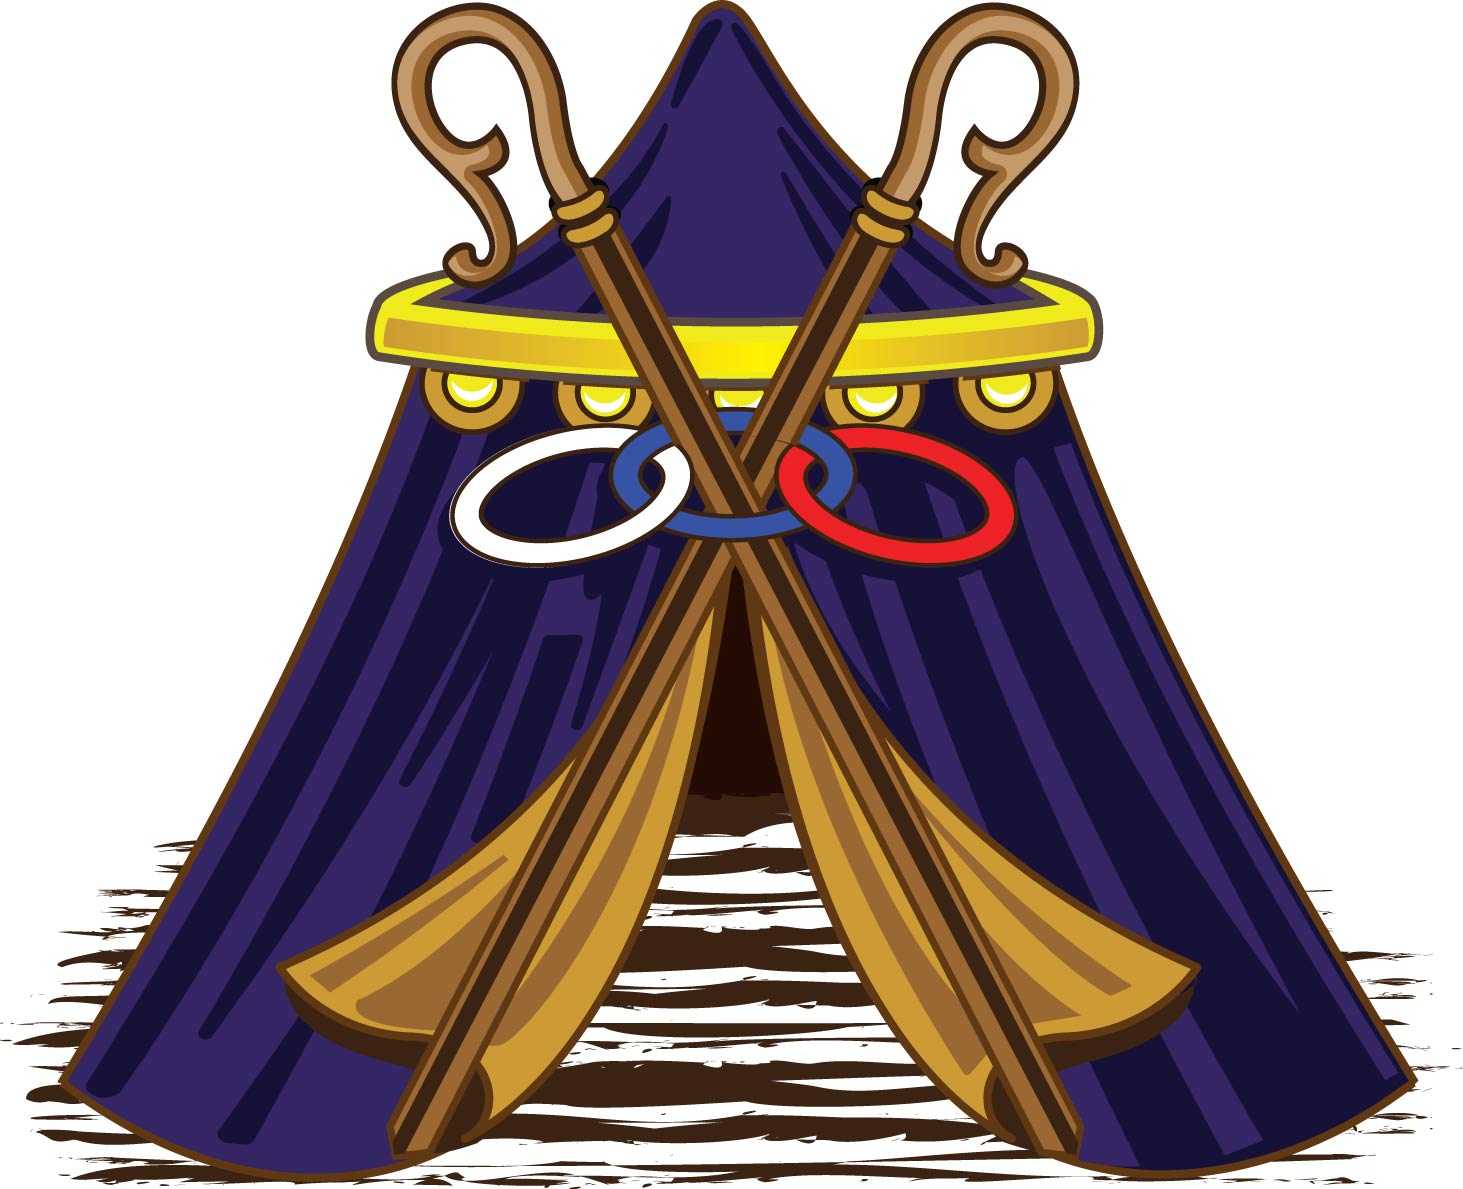 Encampment_Rings LOGO